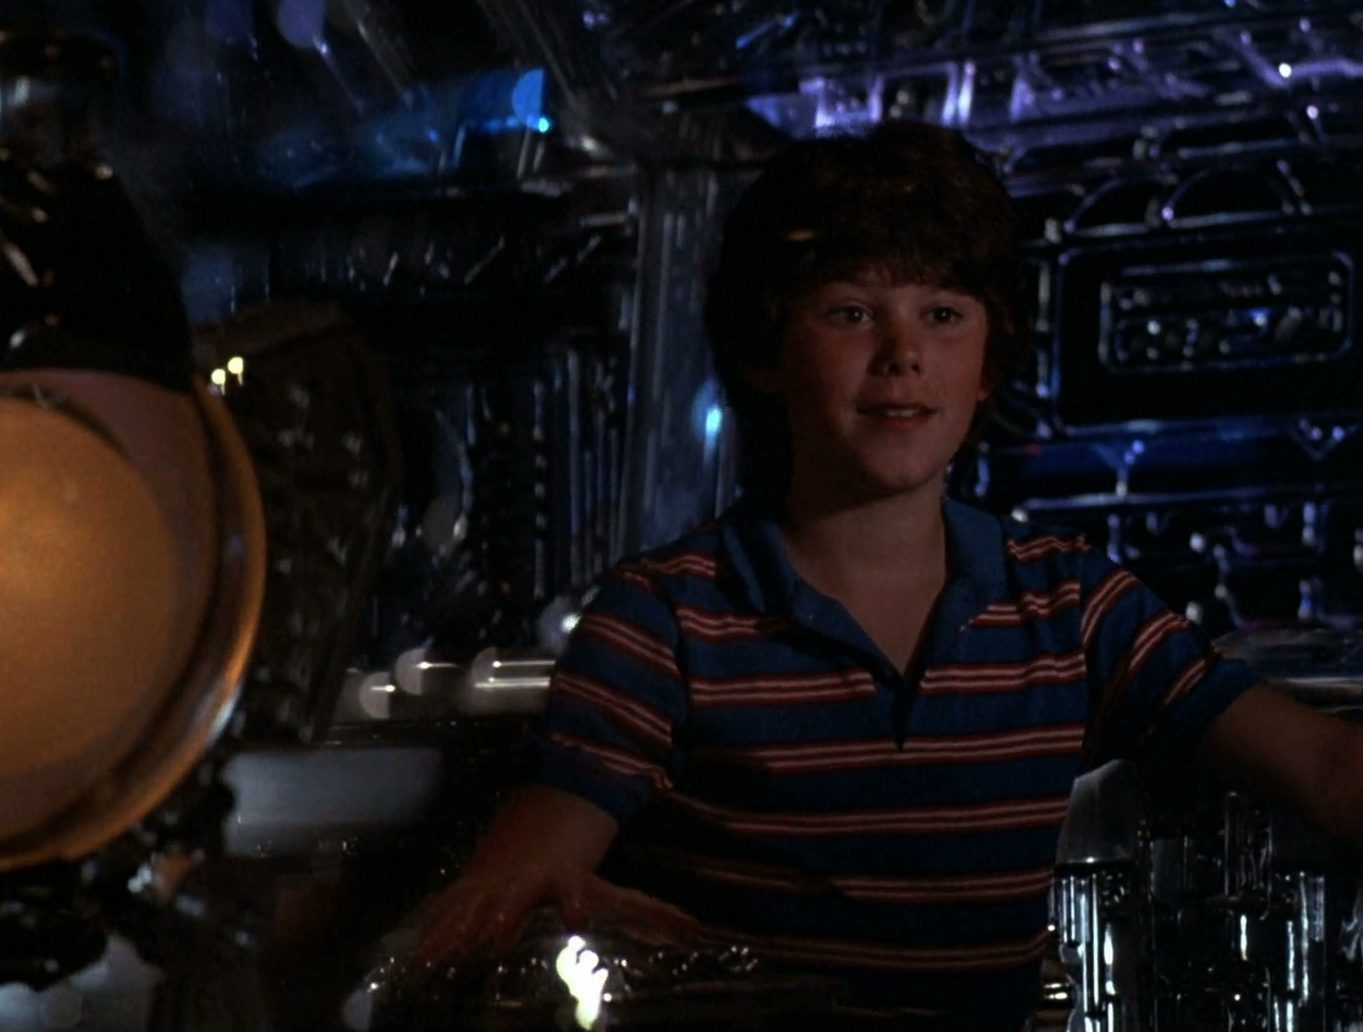 max e1621336019824 21 Things You Might Not Have Realised About Flight Of The Navigator